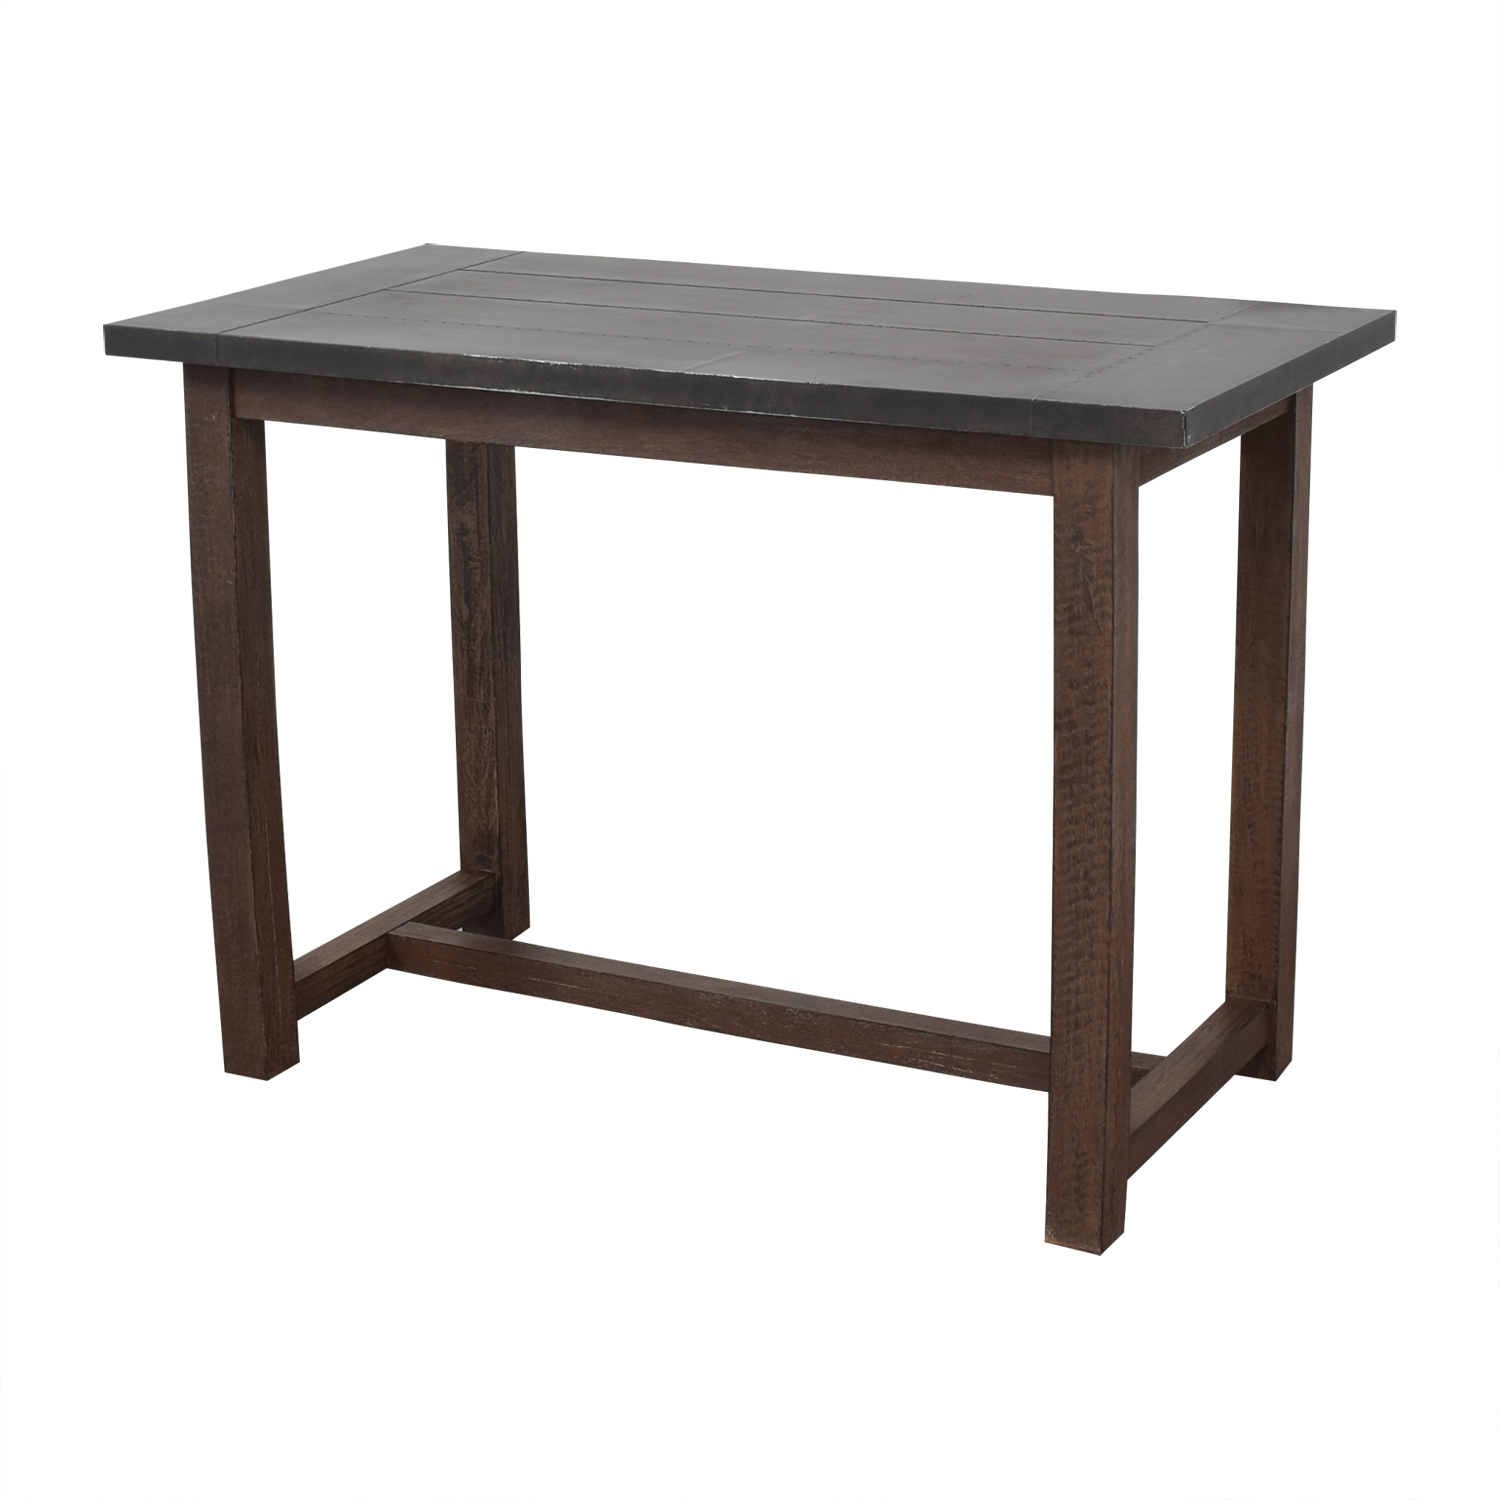 Crate & Barrel Crate & Barrel Galvin High Dining Table Accent Tables